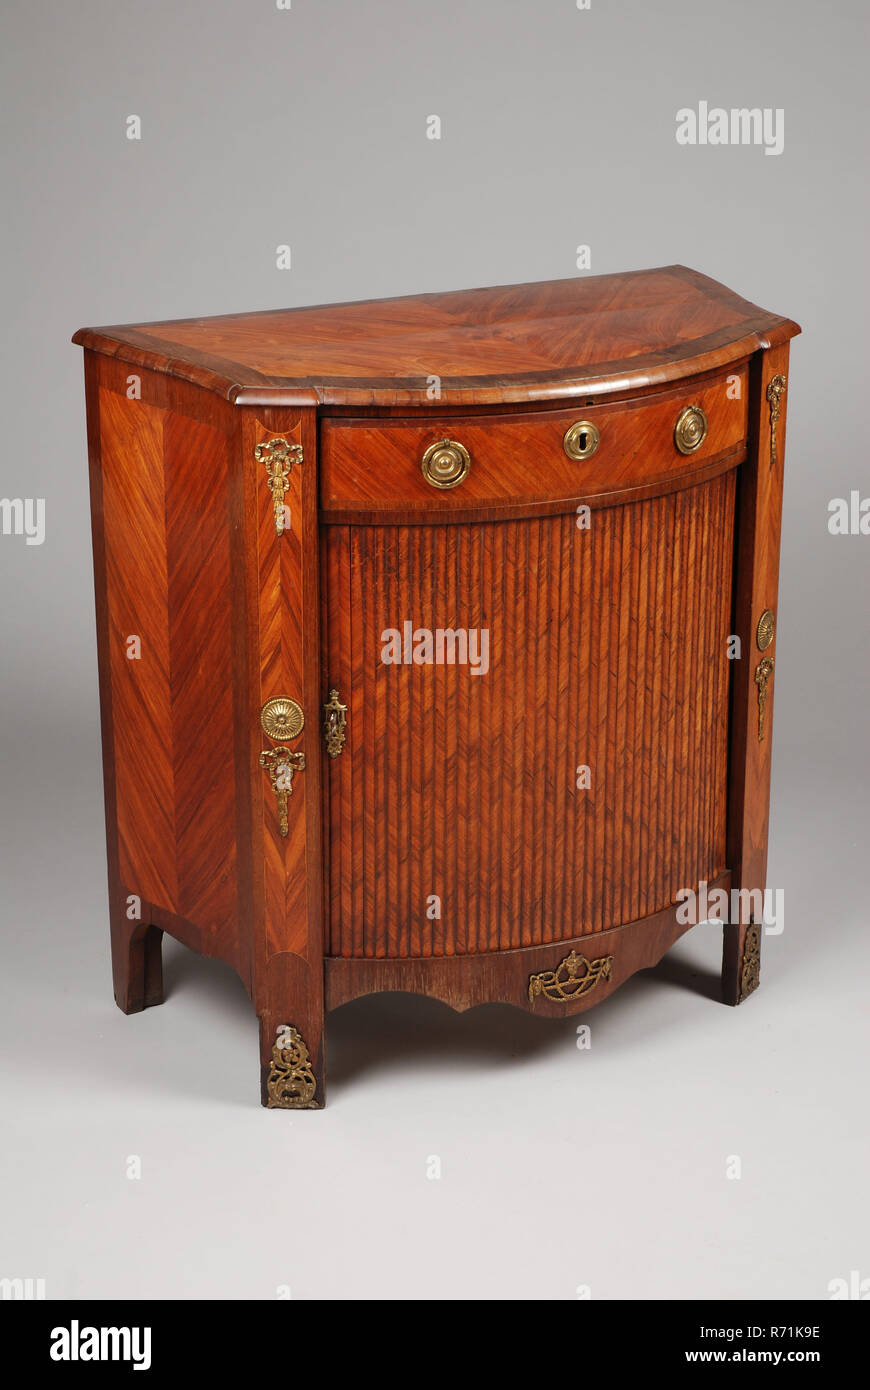 Rosewood Furniture Stockfotos Rosewood Furniture Bilder Seite 2